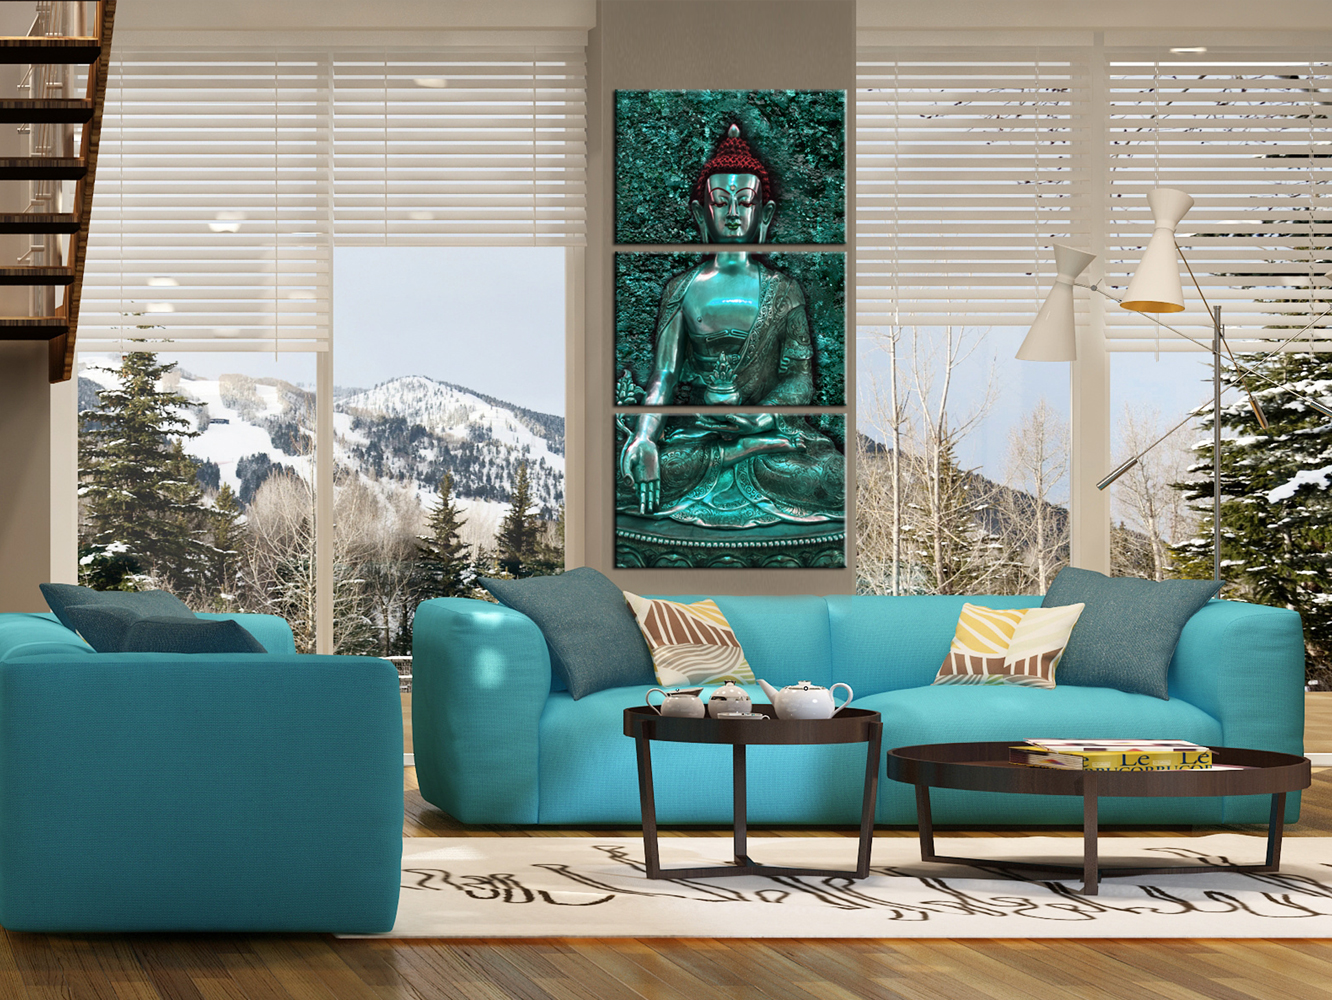 wandbilder xxl buddha bild figur deko bilder leinwand wohnzimmer p c 0006 b f ebay. Black Bedroom Furniture Sets. Home Design Ideas